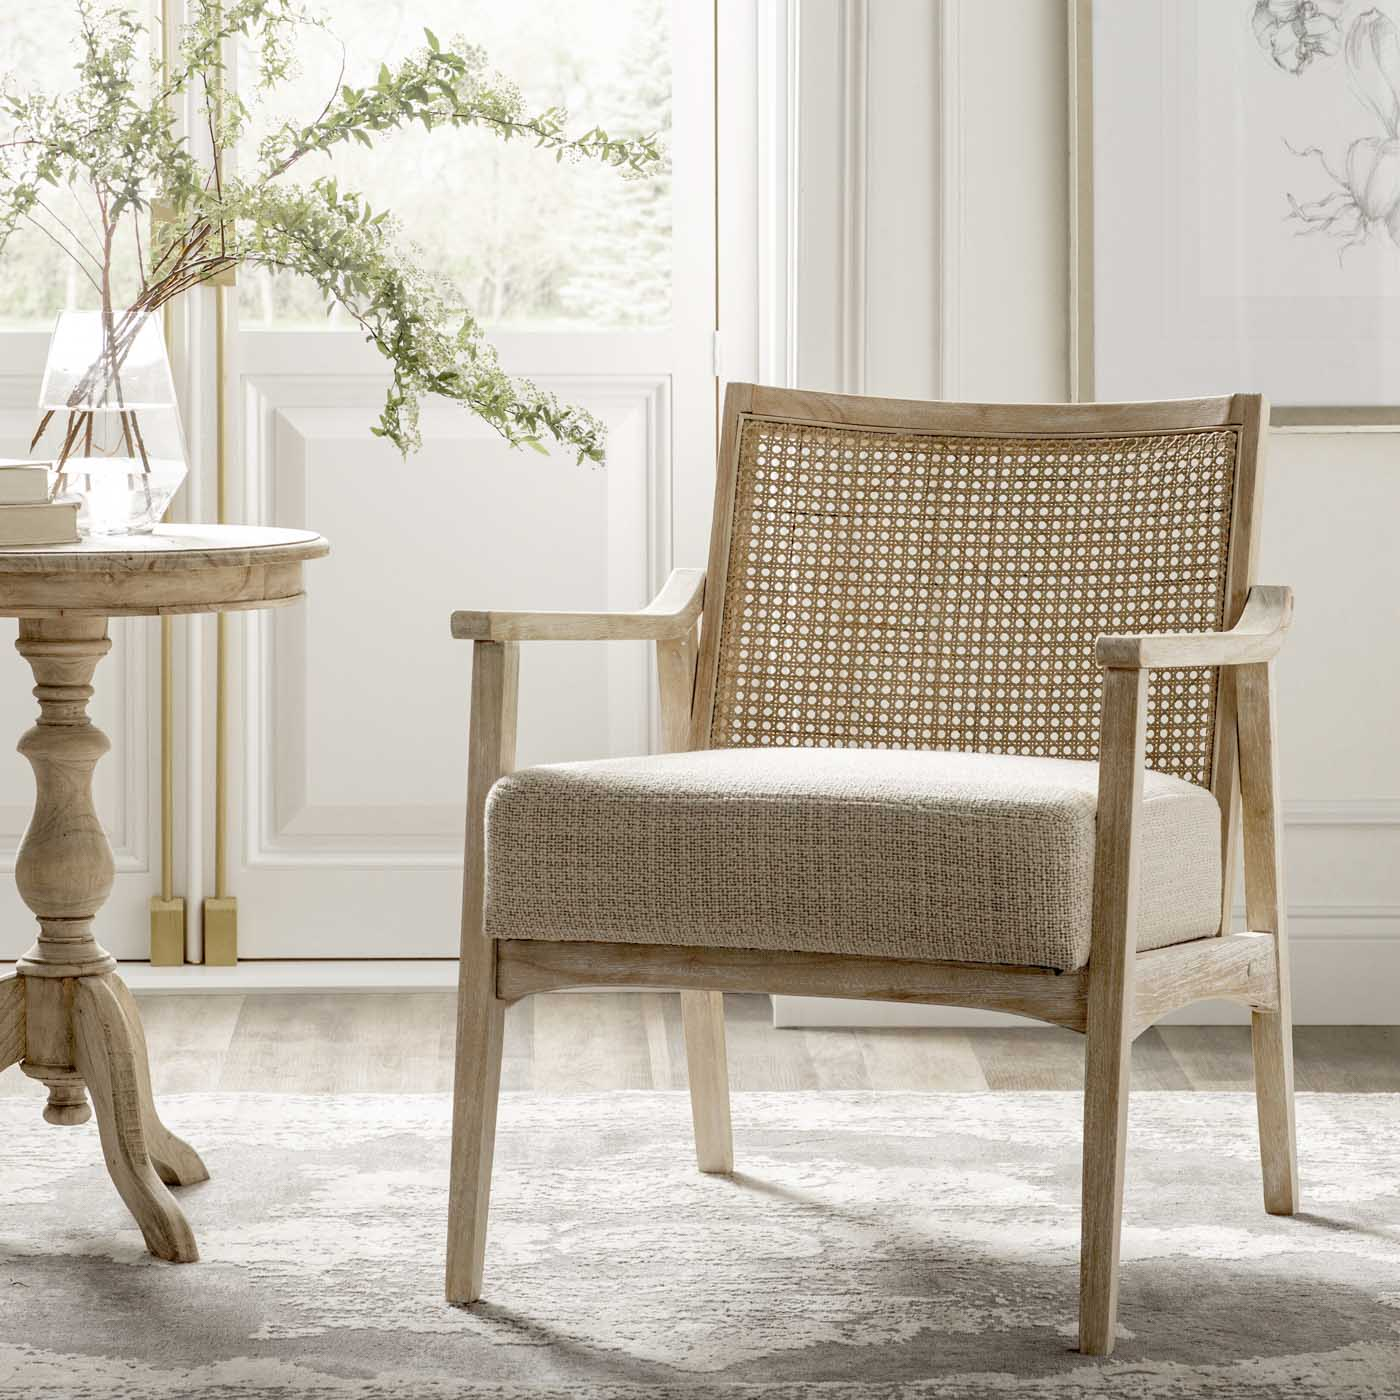 Cane Living Room Chairs -- Natural Living Room Furniture Ideas